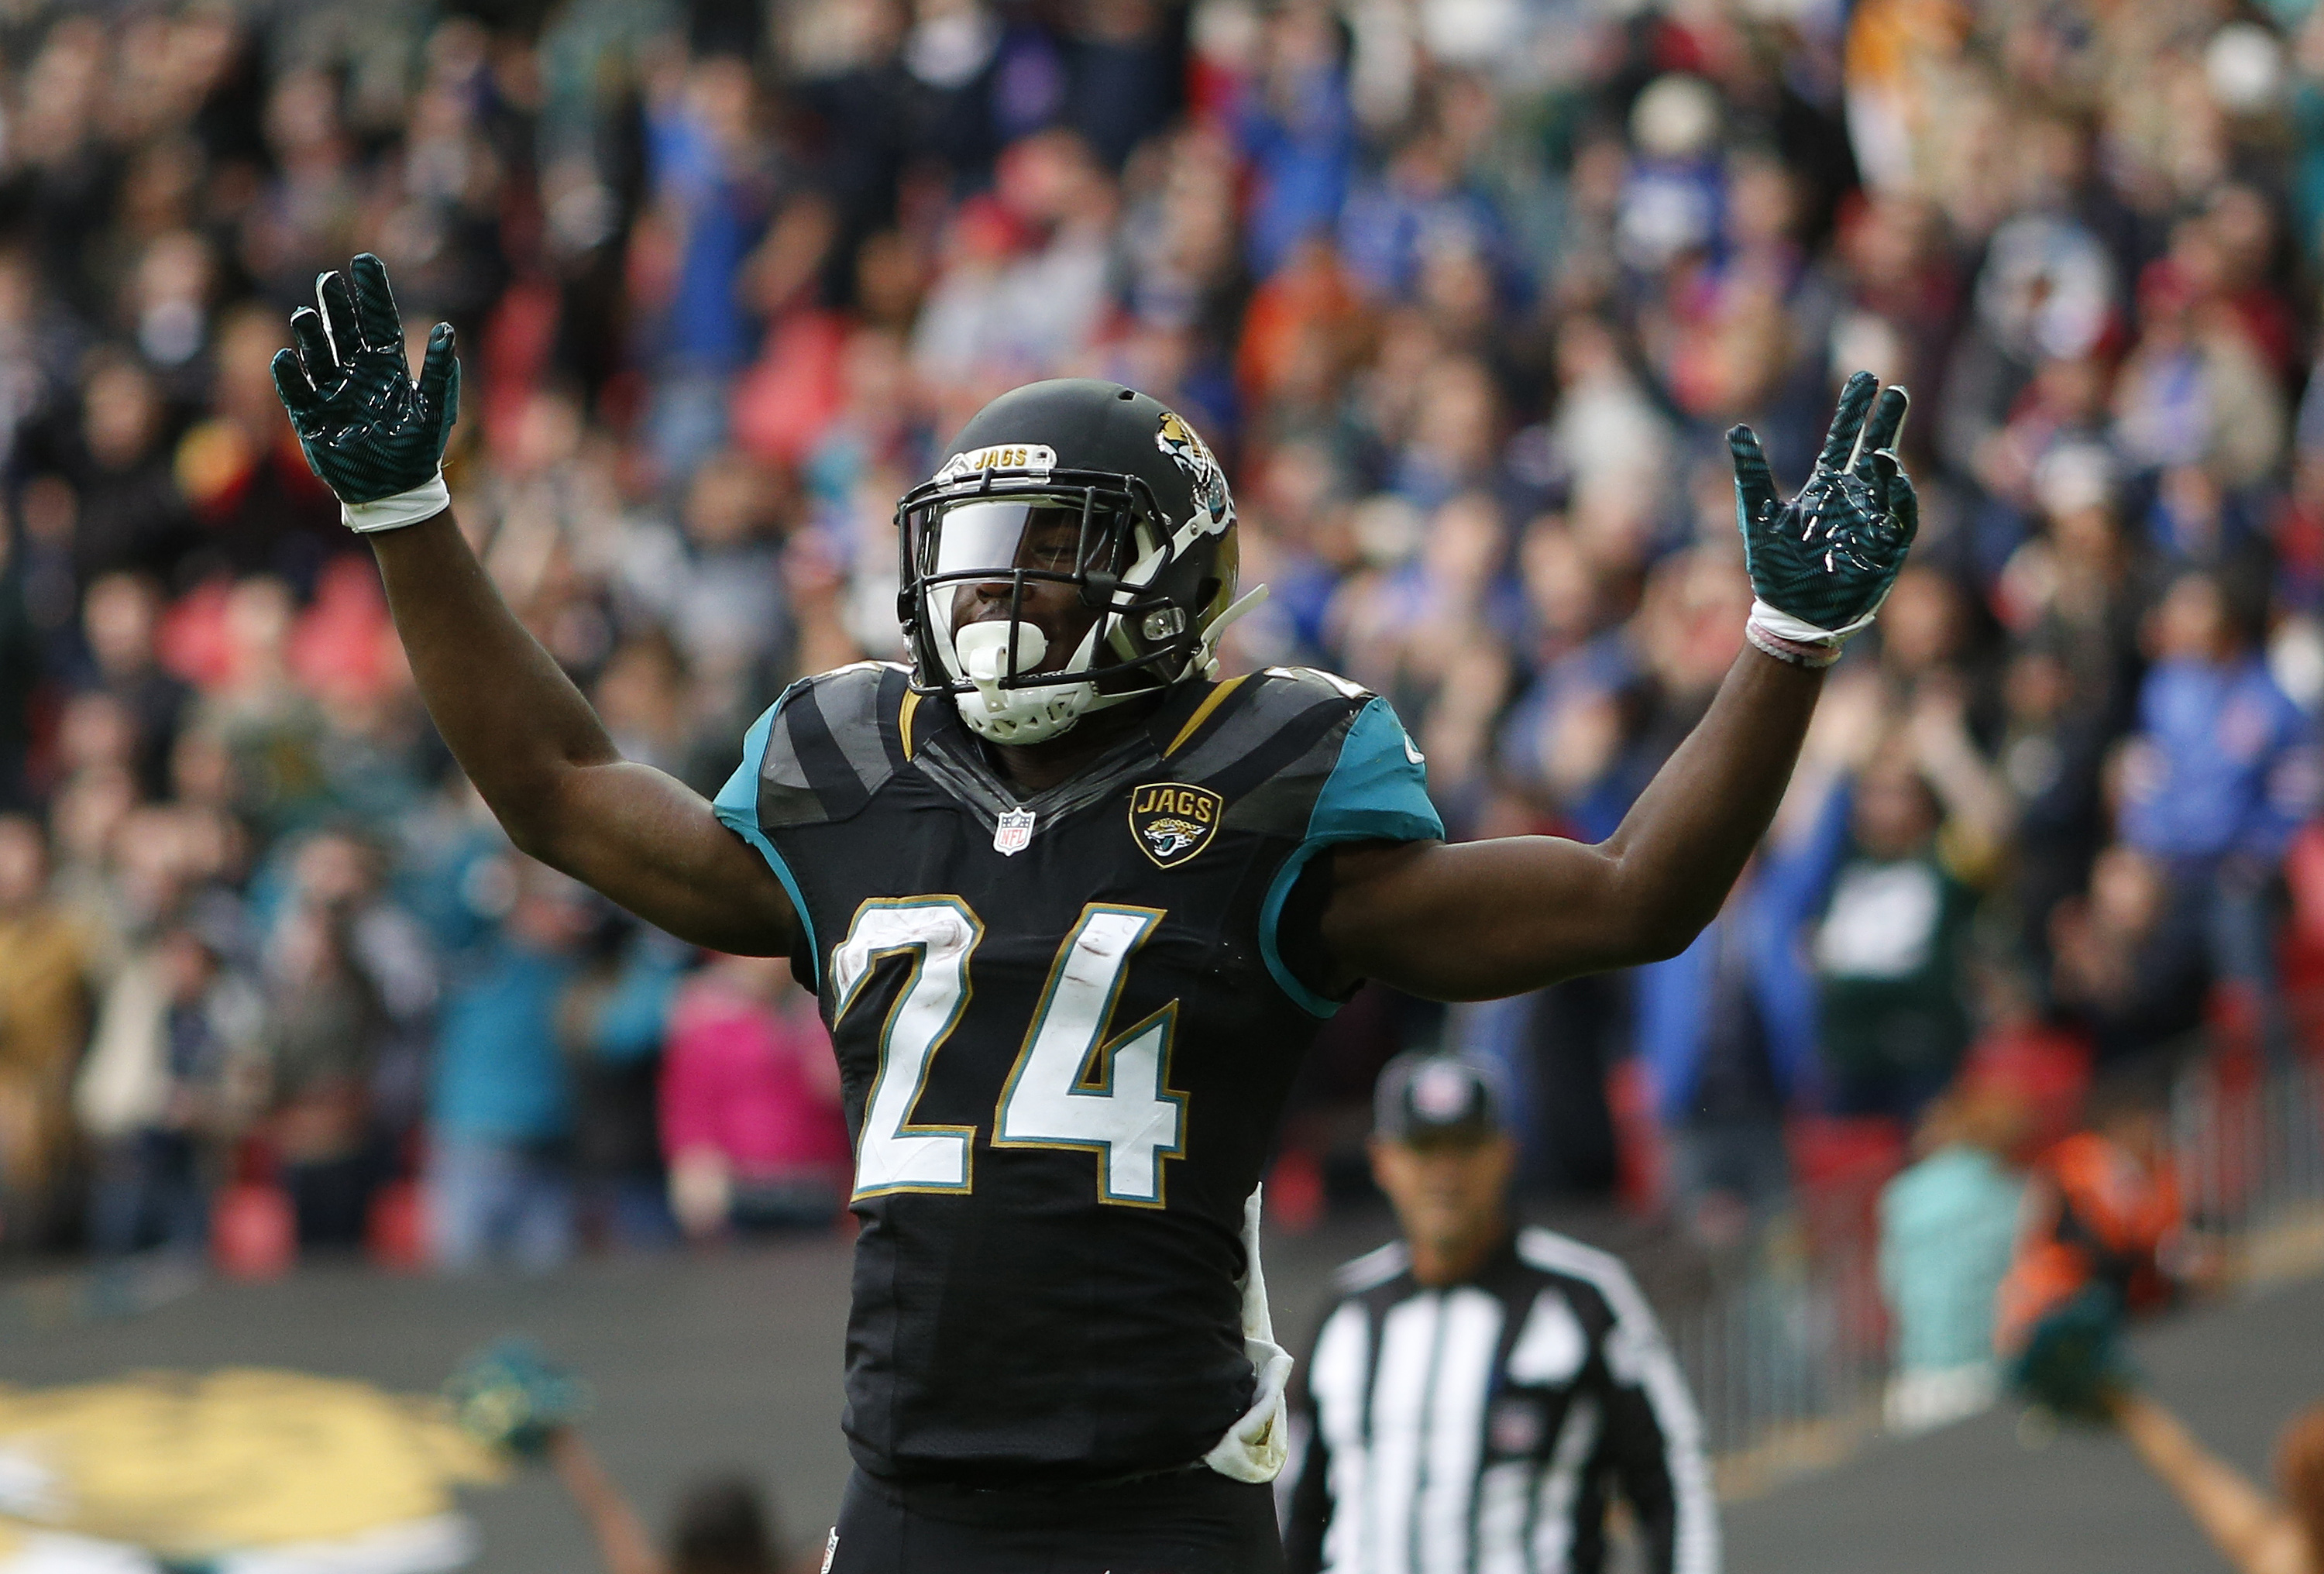 After last year's humbling defeat in London, the Bills know better than to look past T.J. Yeldon and the Jaguars.